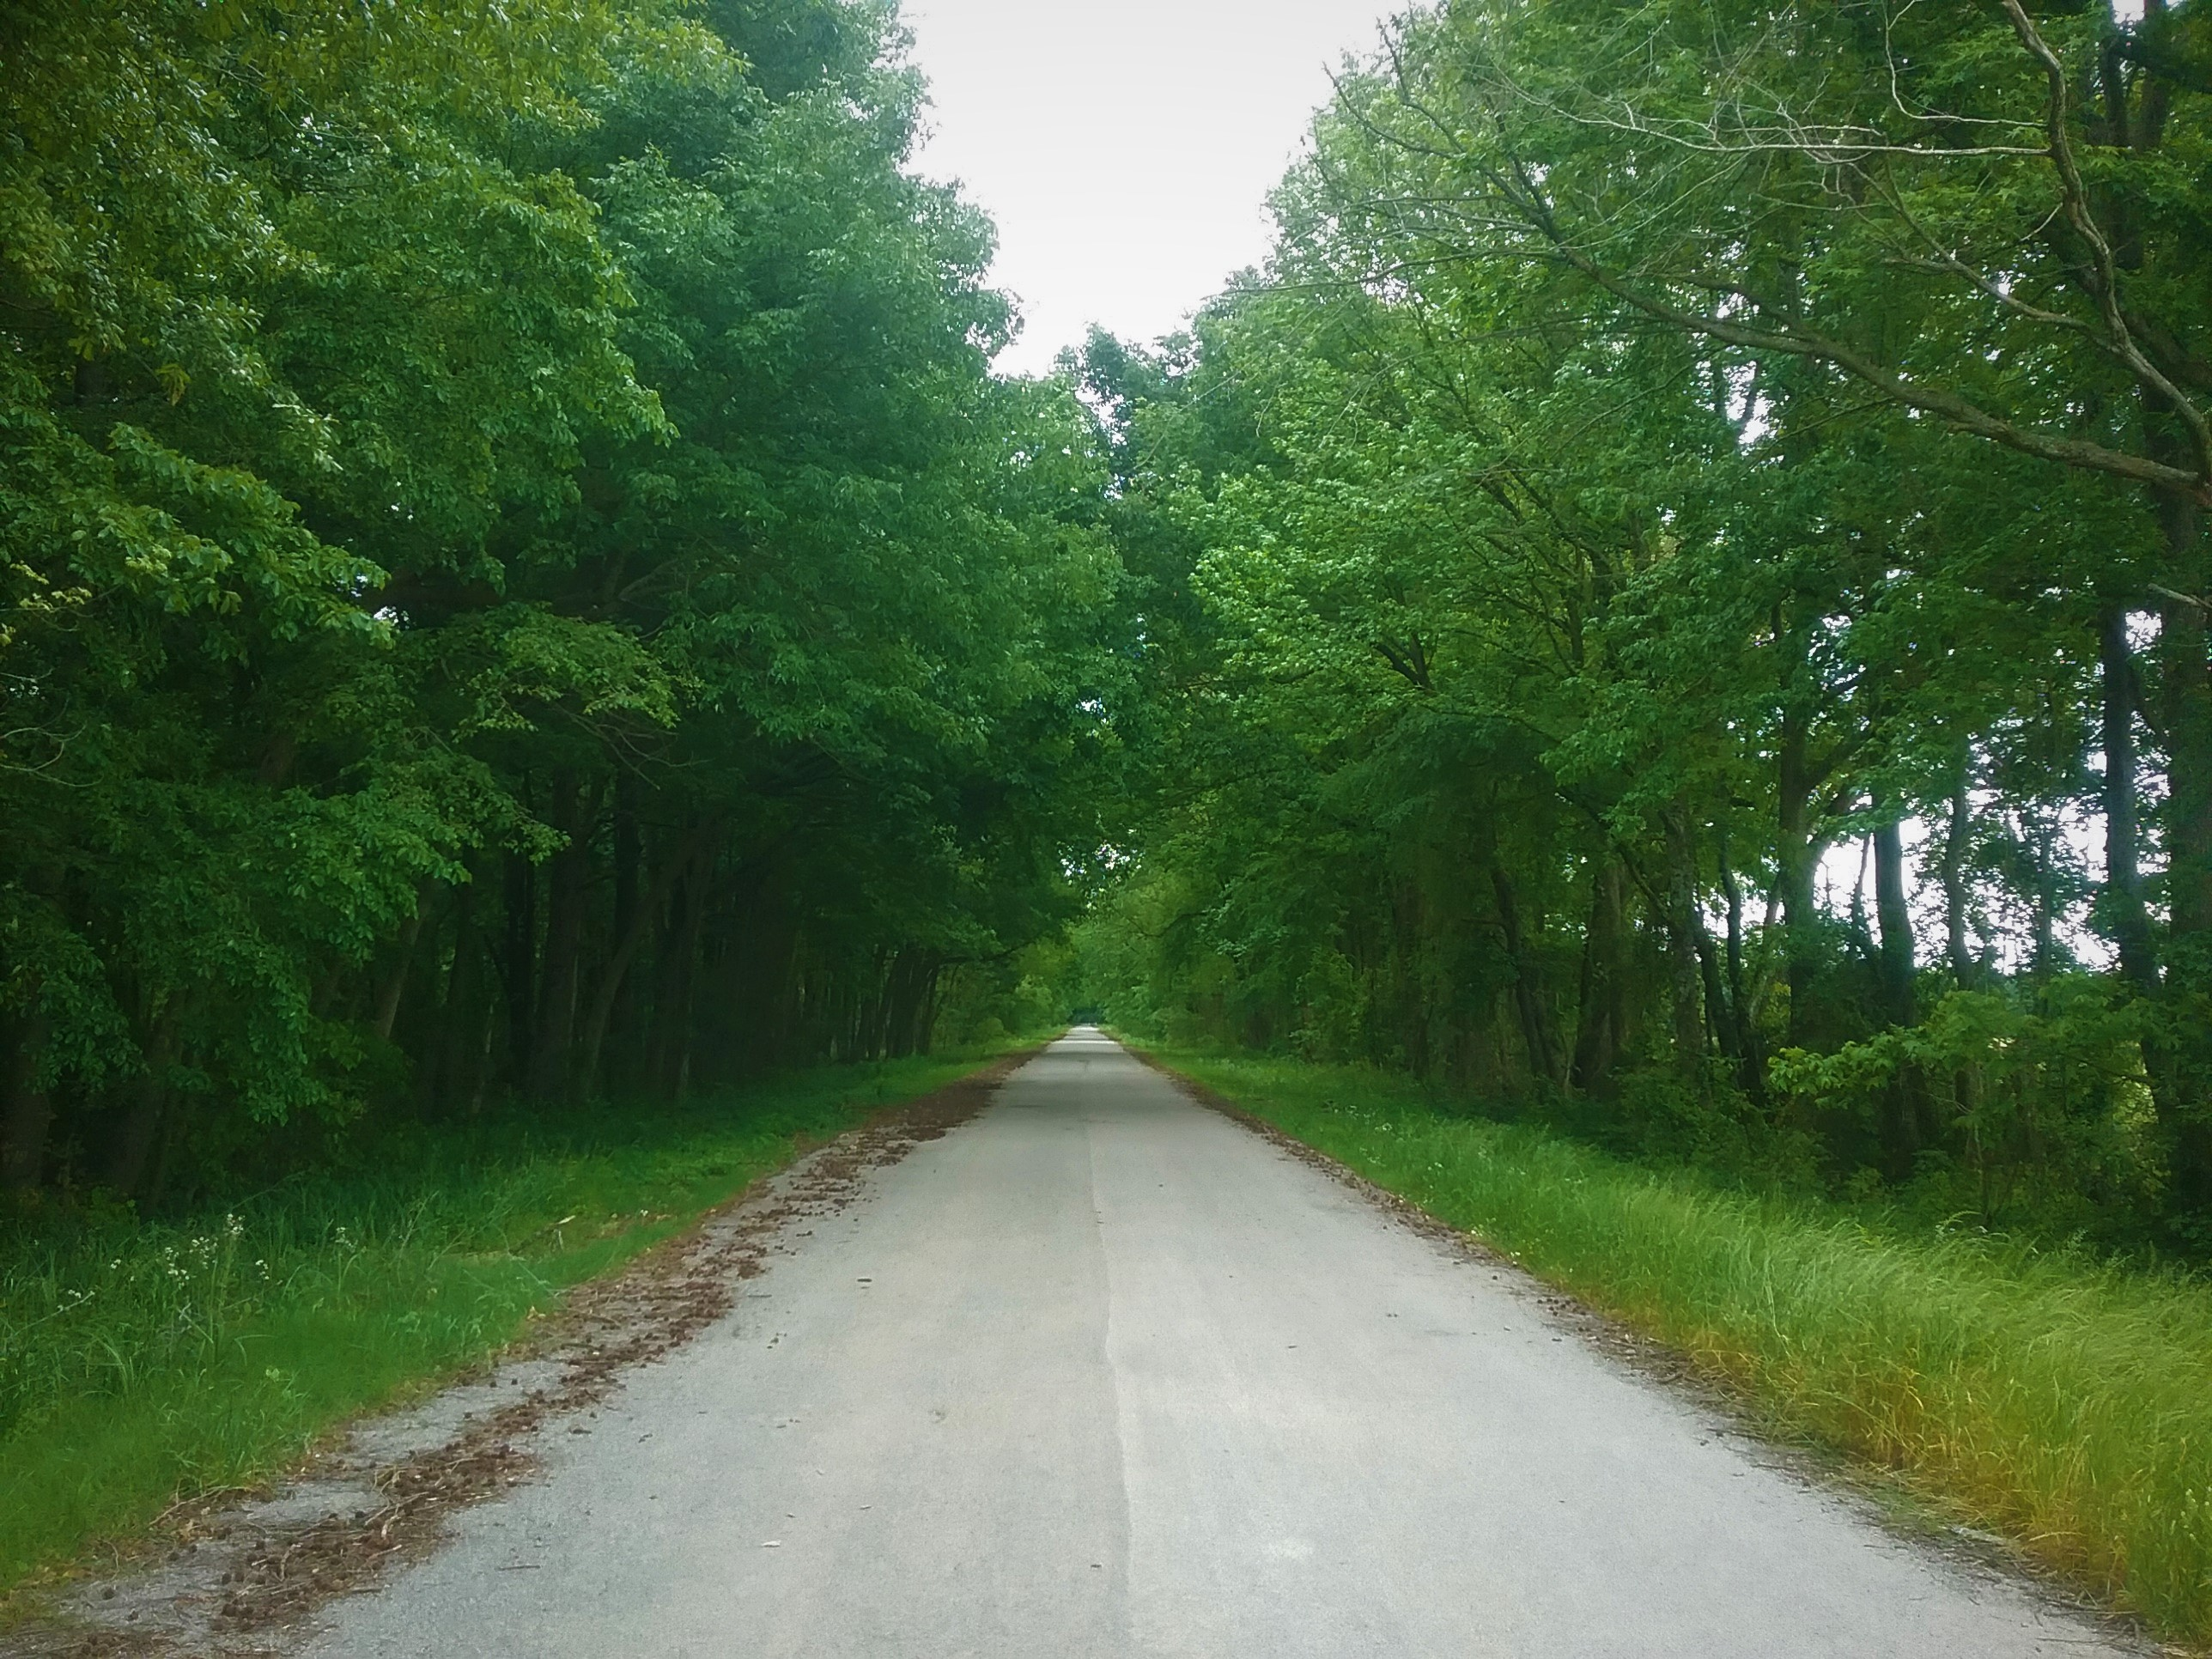 Straight road with trees lining both sides.